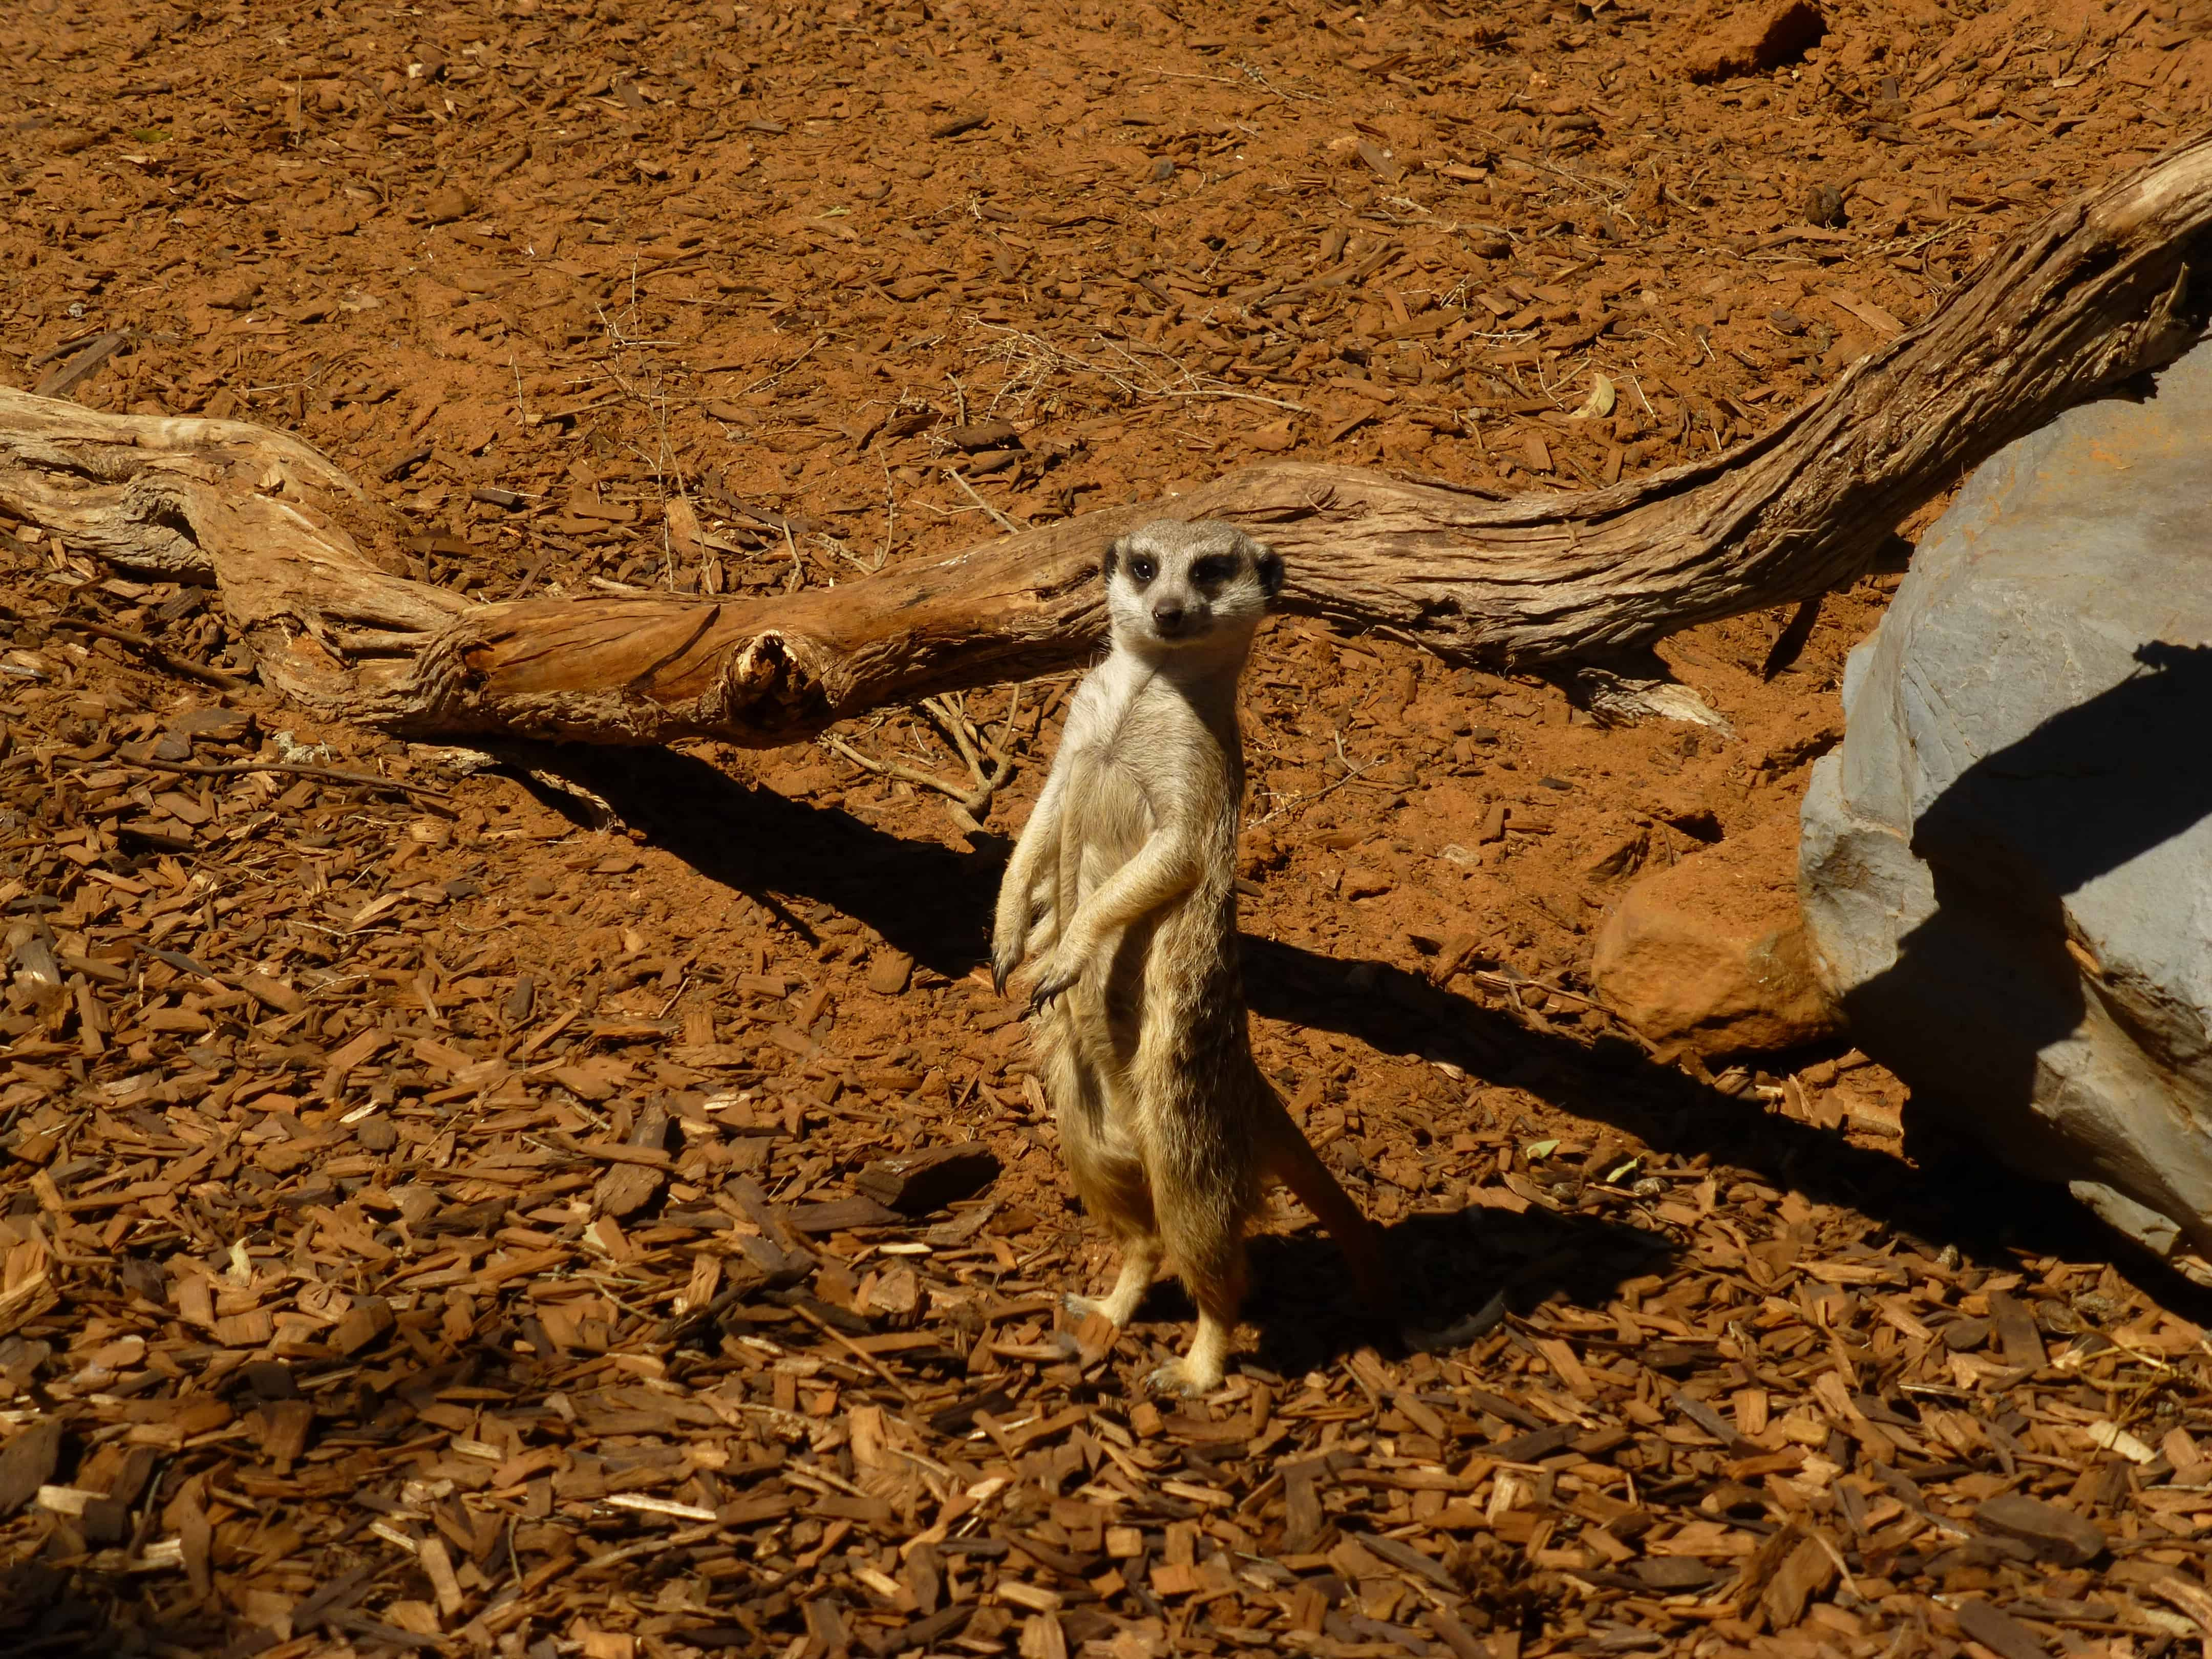 Monarto Zoo Meerkat in watchful stance